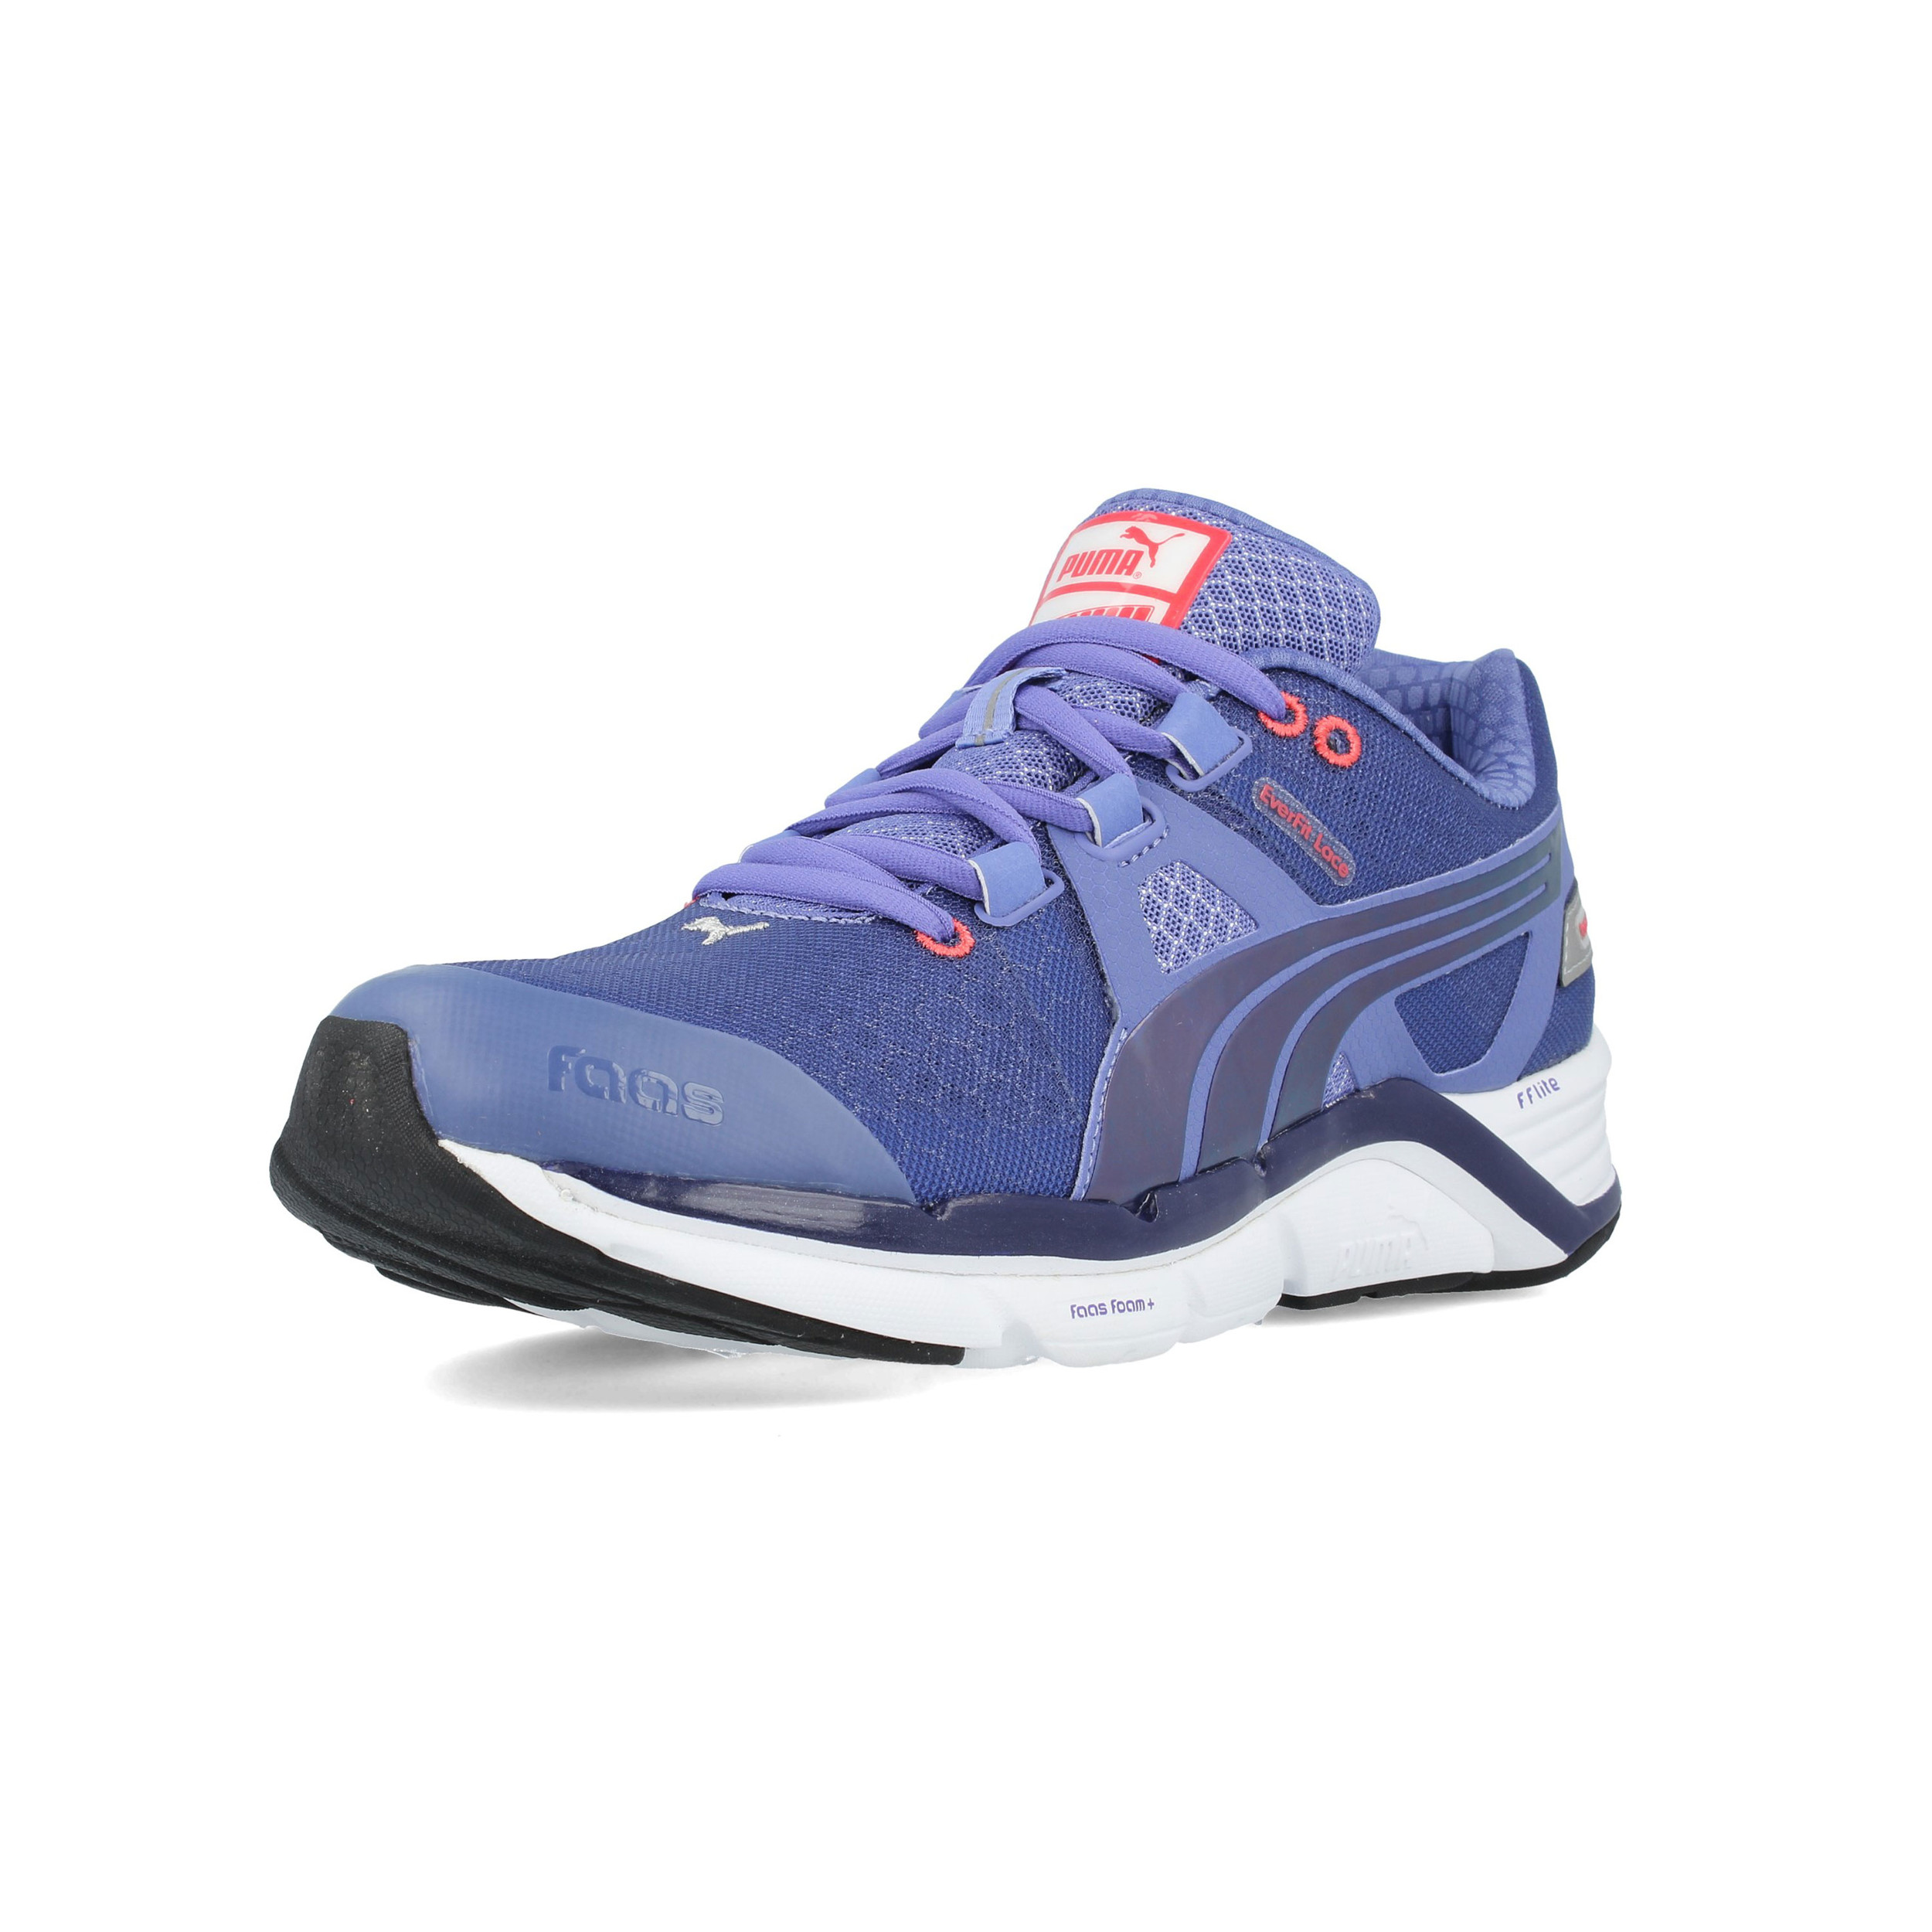 Details About Puma Womens Faas 1000 V1 5 Running Shoes Trainers Sneakers Purple Sports